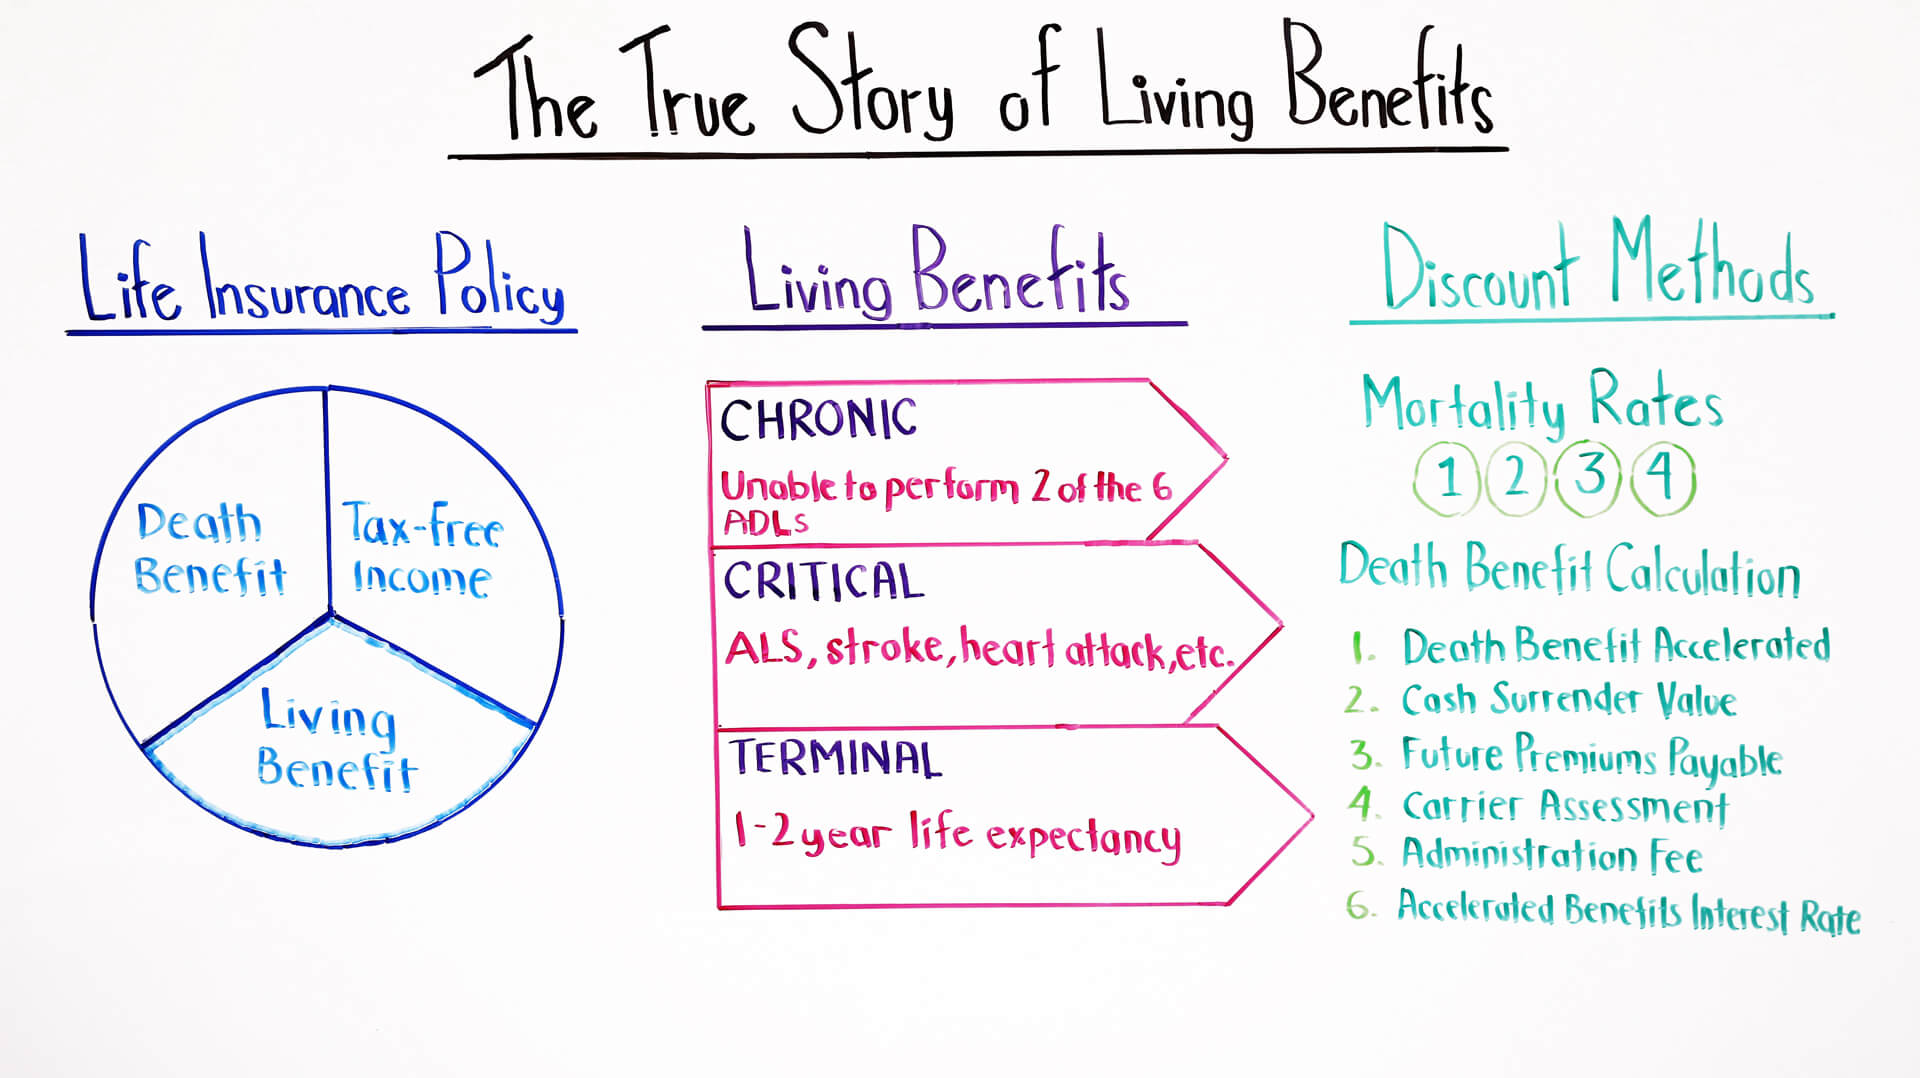 the true story of living benefits